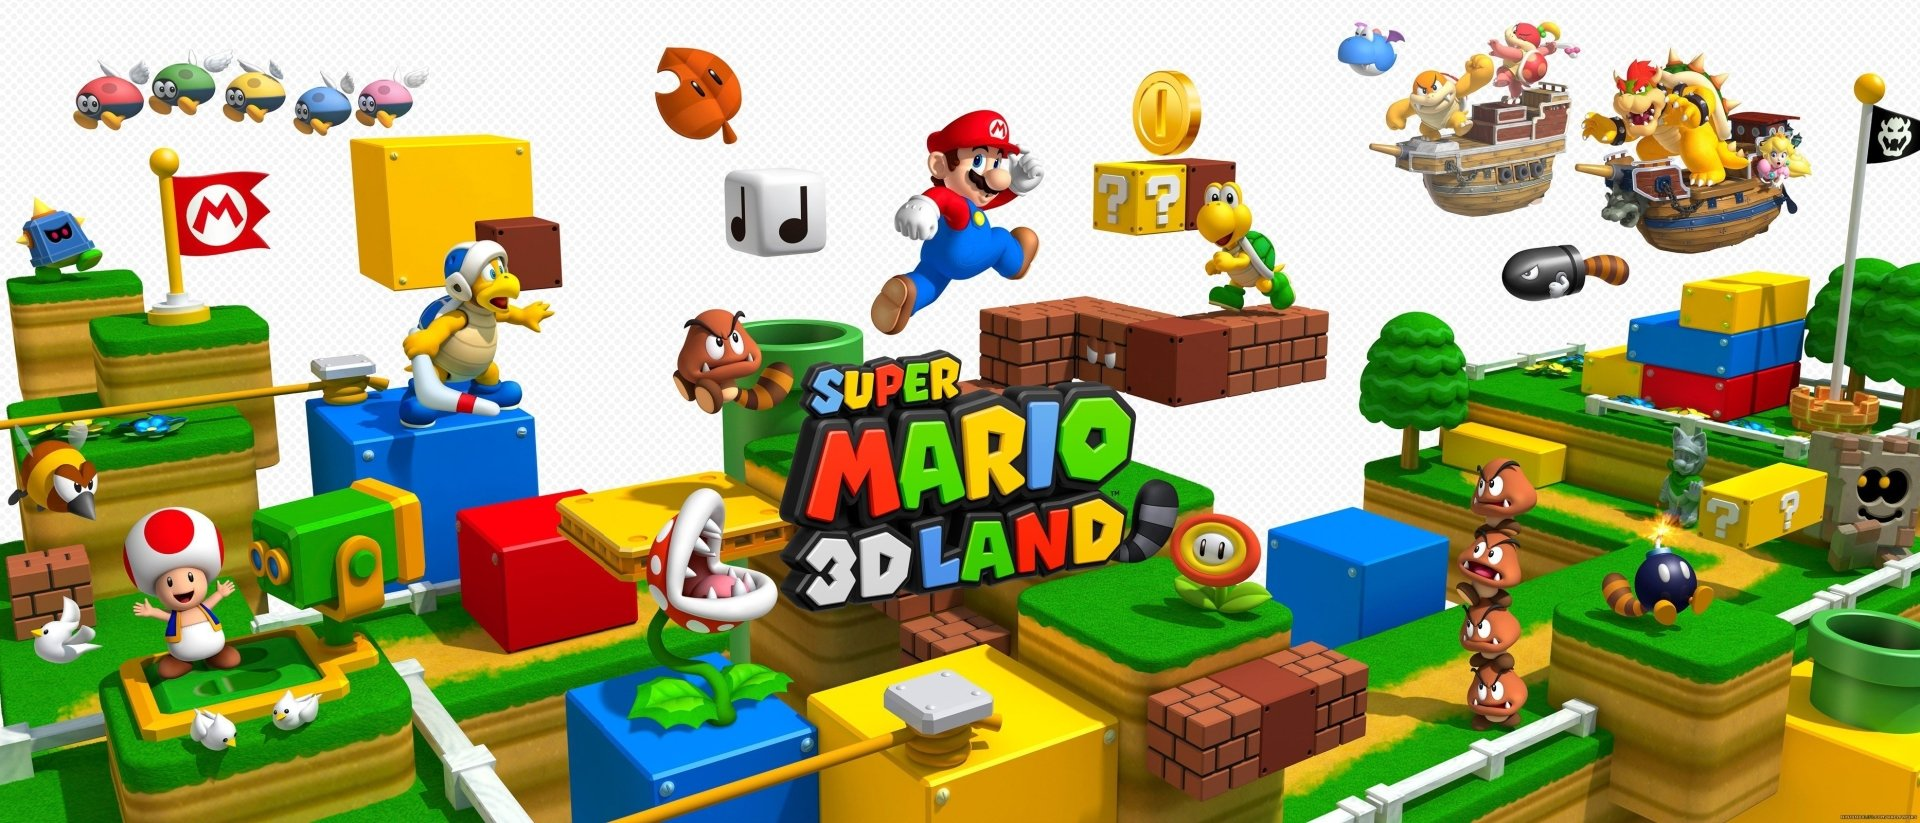 Video Game - Super Mario 3D Land  3D Nintendo Mario Bakgrund